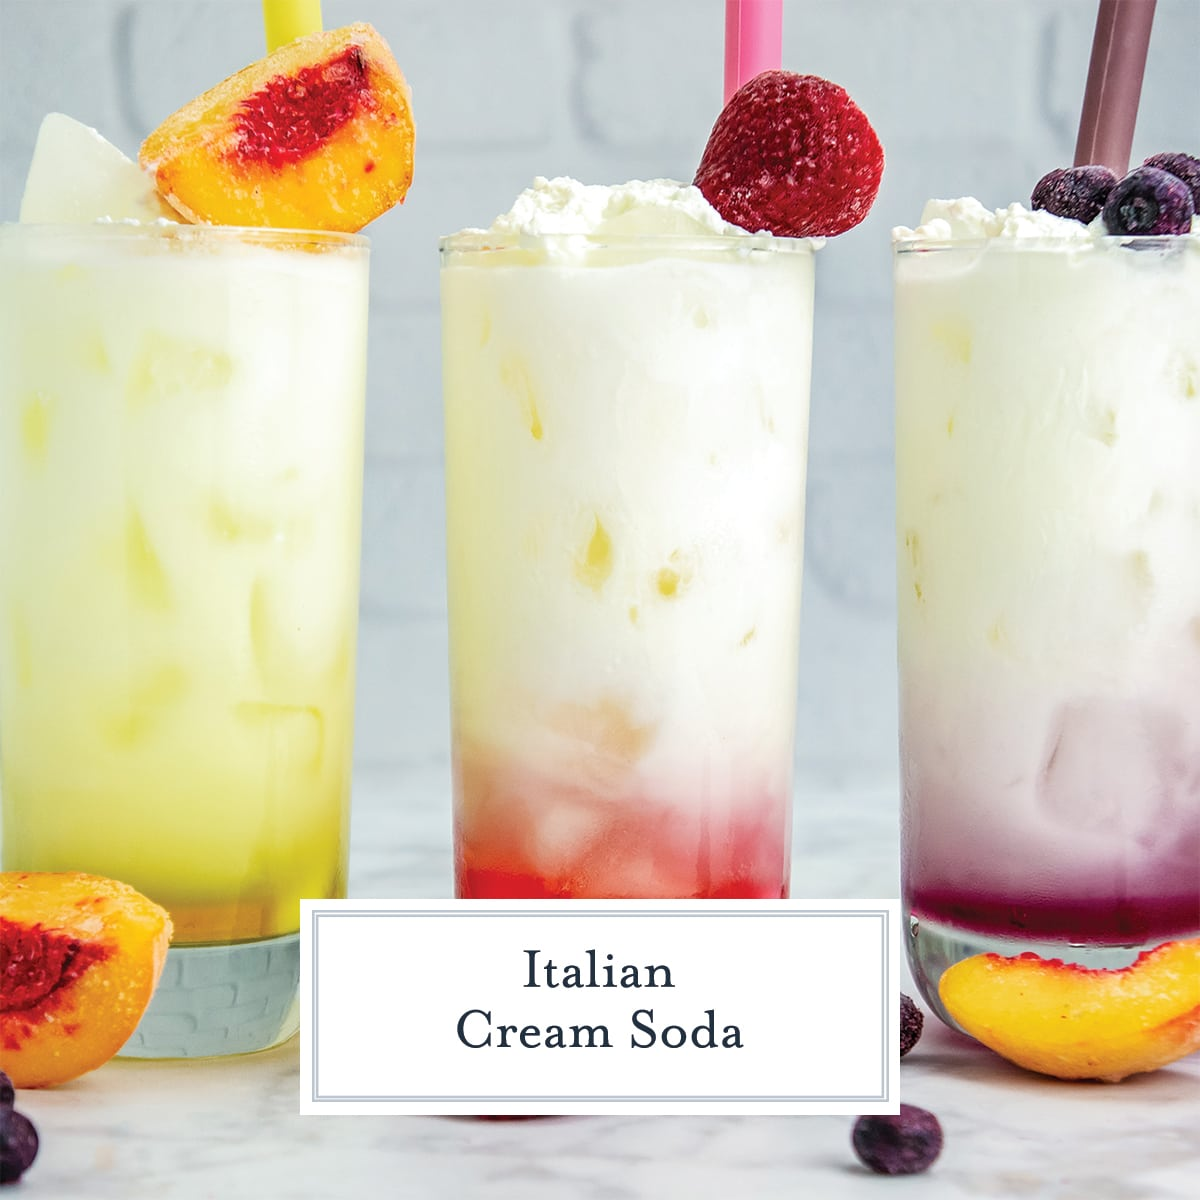 flavored Italian cream soda with peaches, strawberry and blueberry